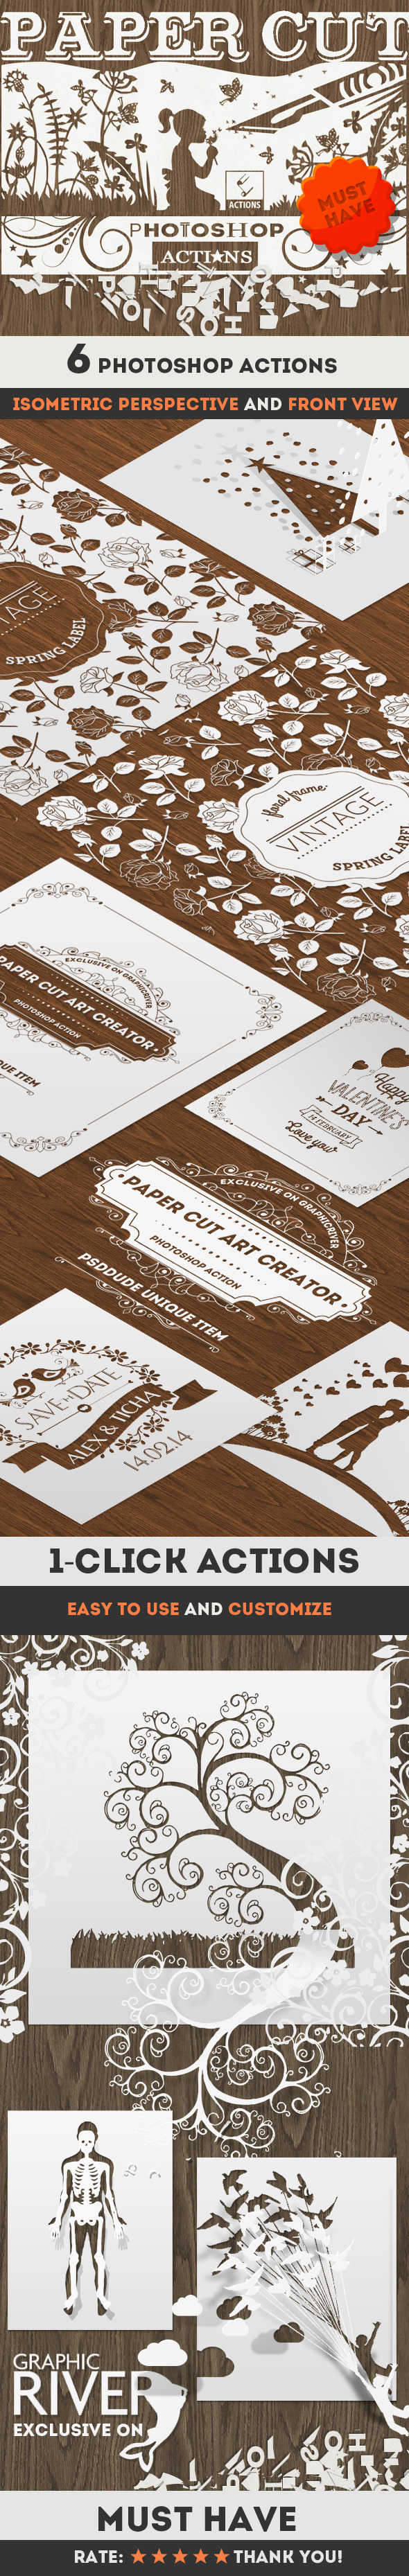 Paper Cut Art Photoshop Actions - Utilities Actions